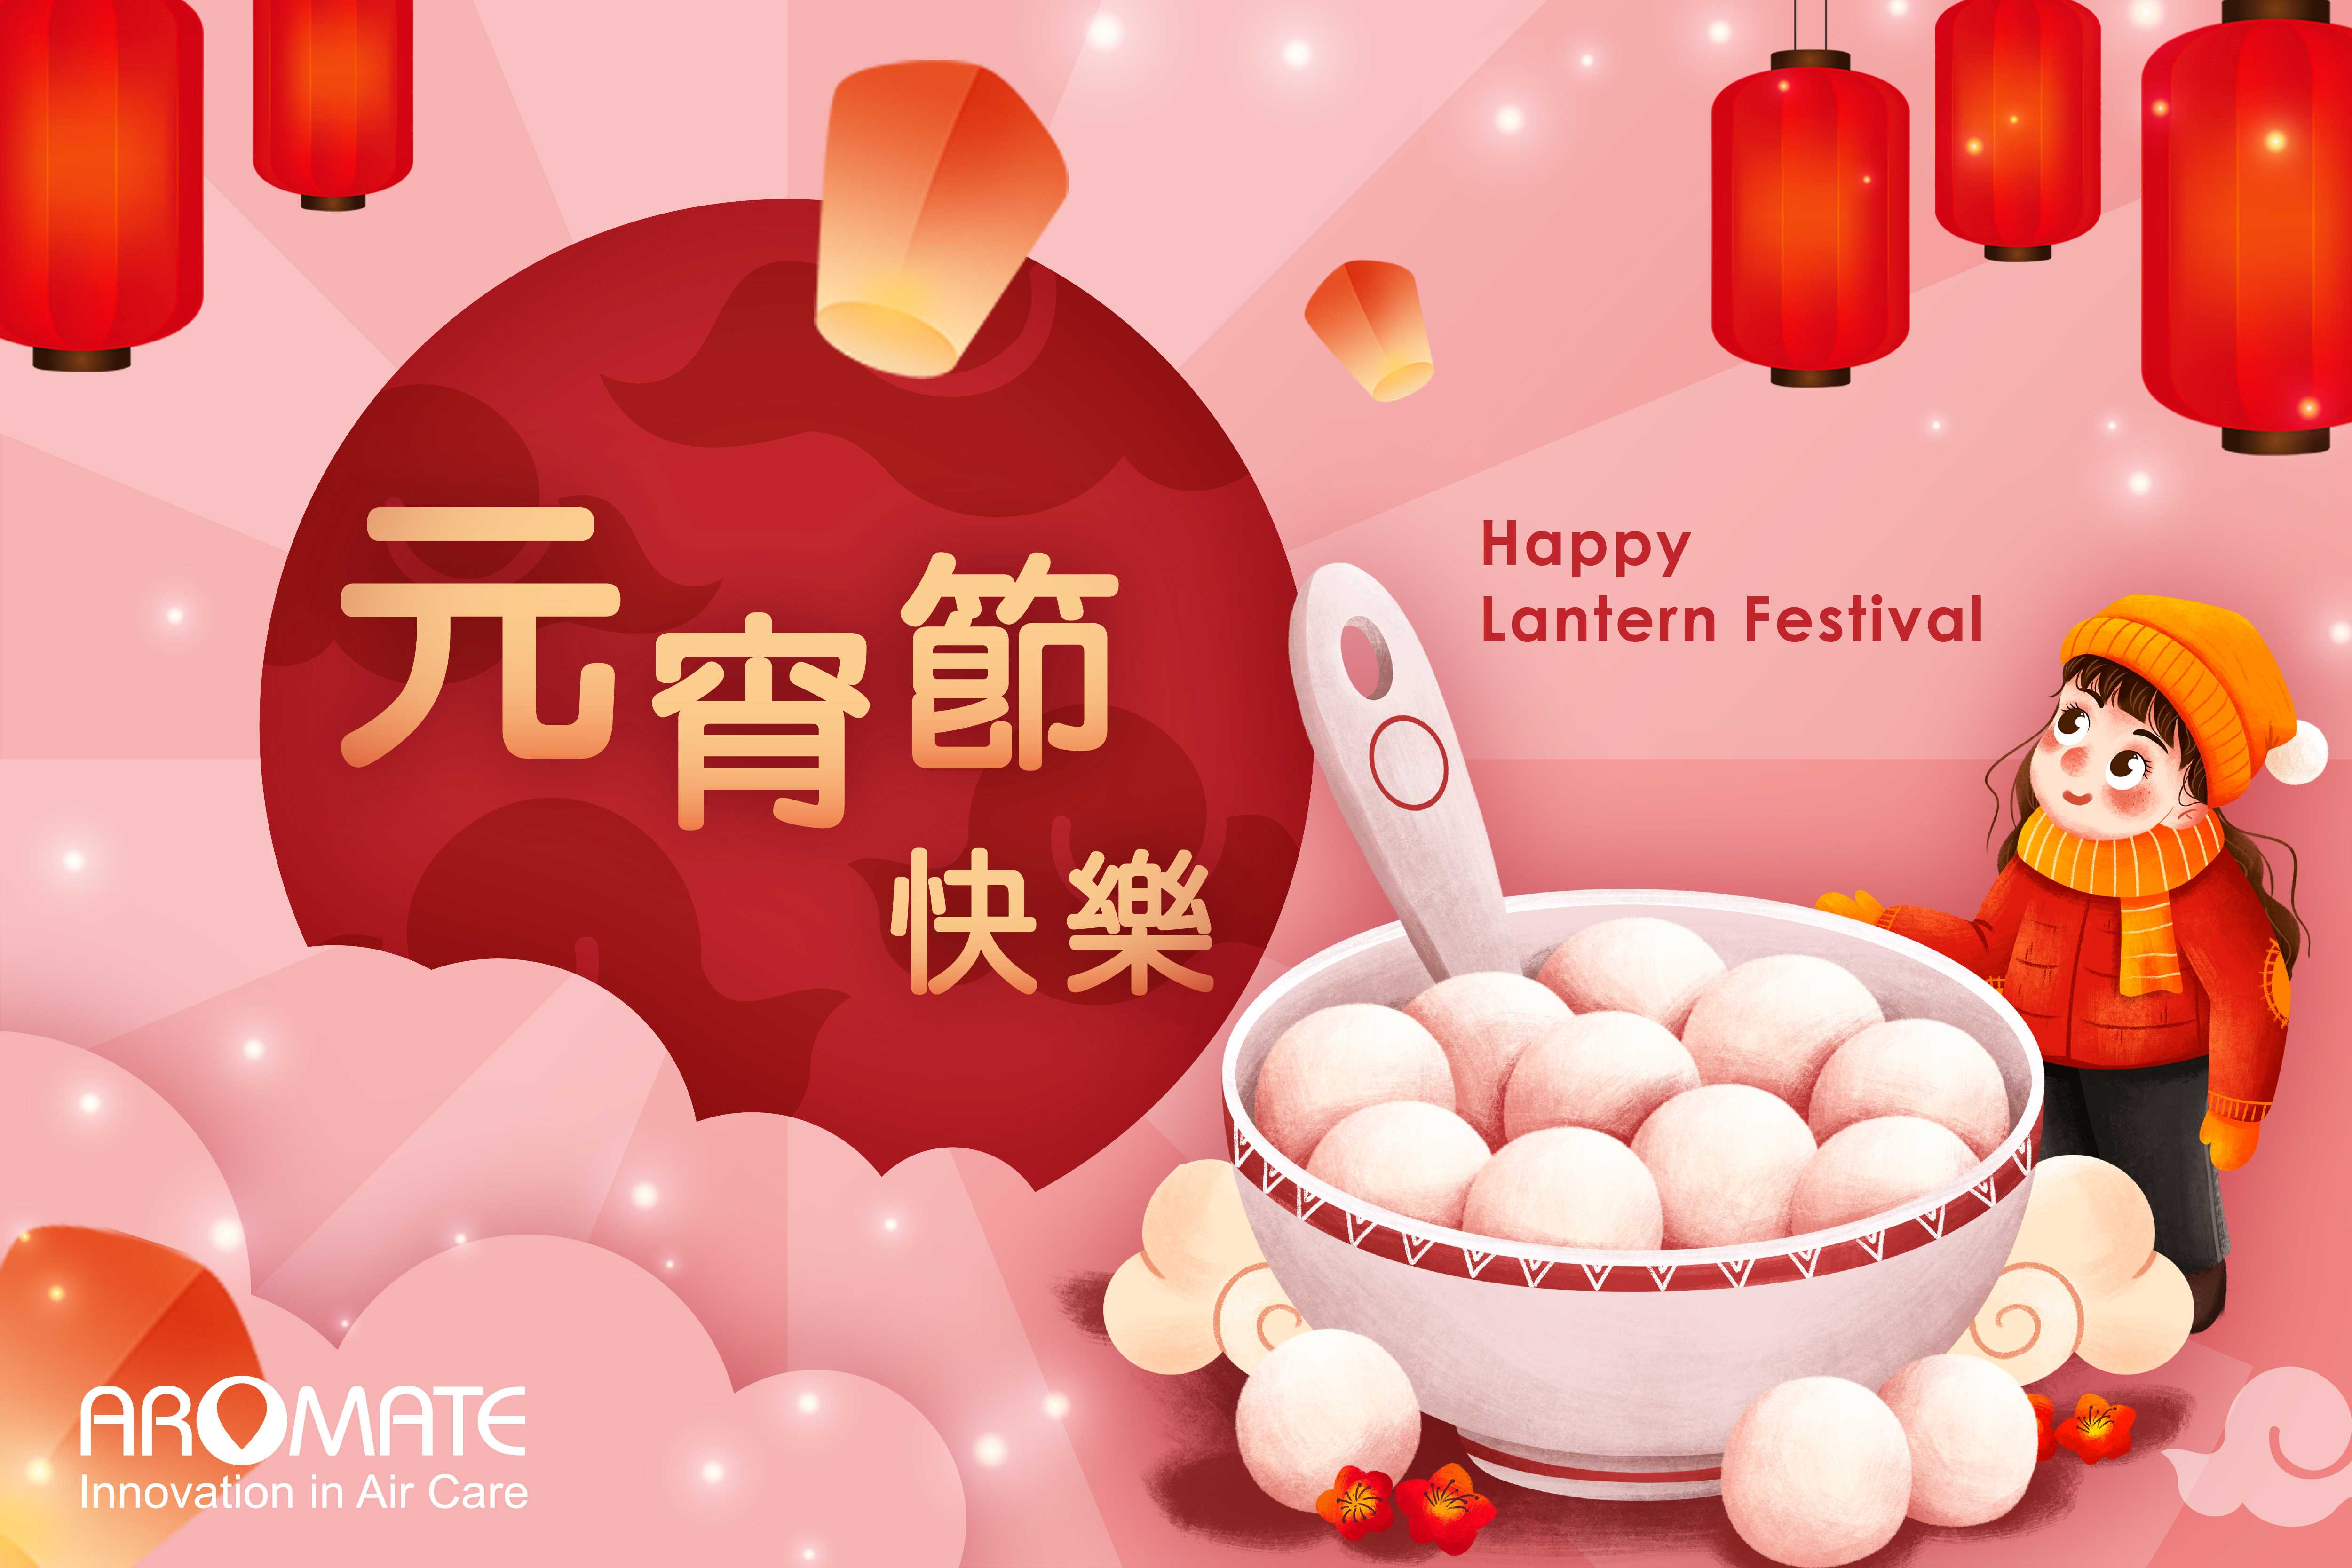 """Happy Lantern Festival - With the Chinese New Year celebration coming to an end, we welcome the spring season. Nothing says """"spring is almost here"""" like berry scents!"""